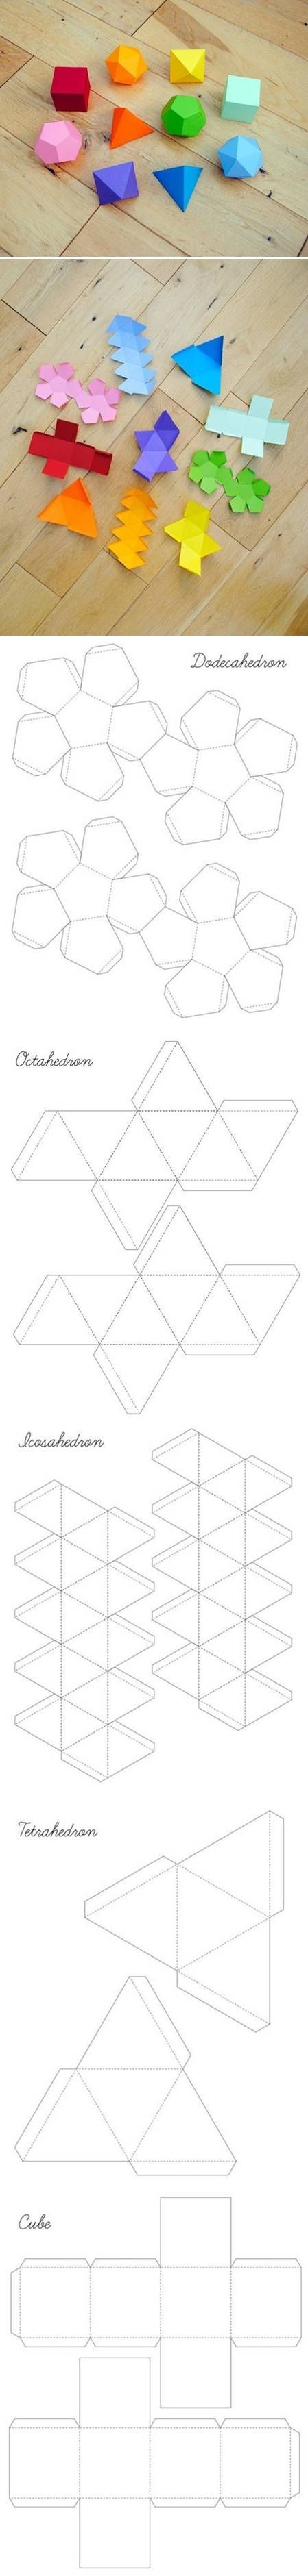 DIY Geometrical Box Templates DIY. Download pdf templates.